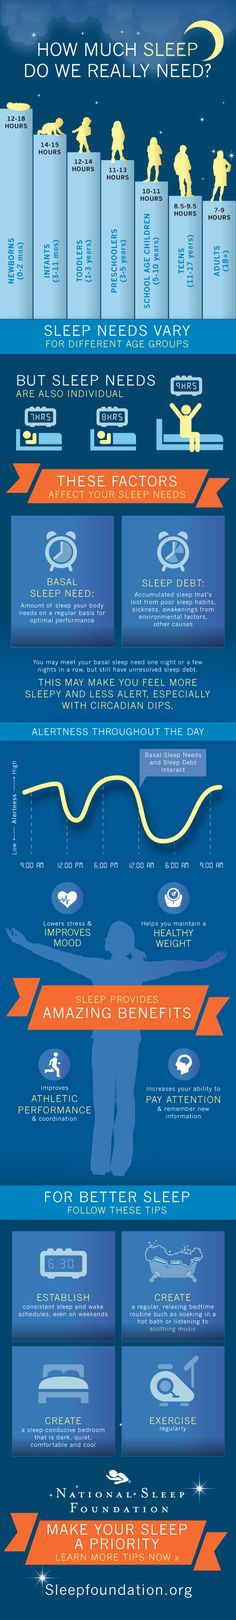 Learn how our sleep needs change as we age and just how much sleep we really need each evening.